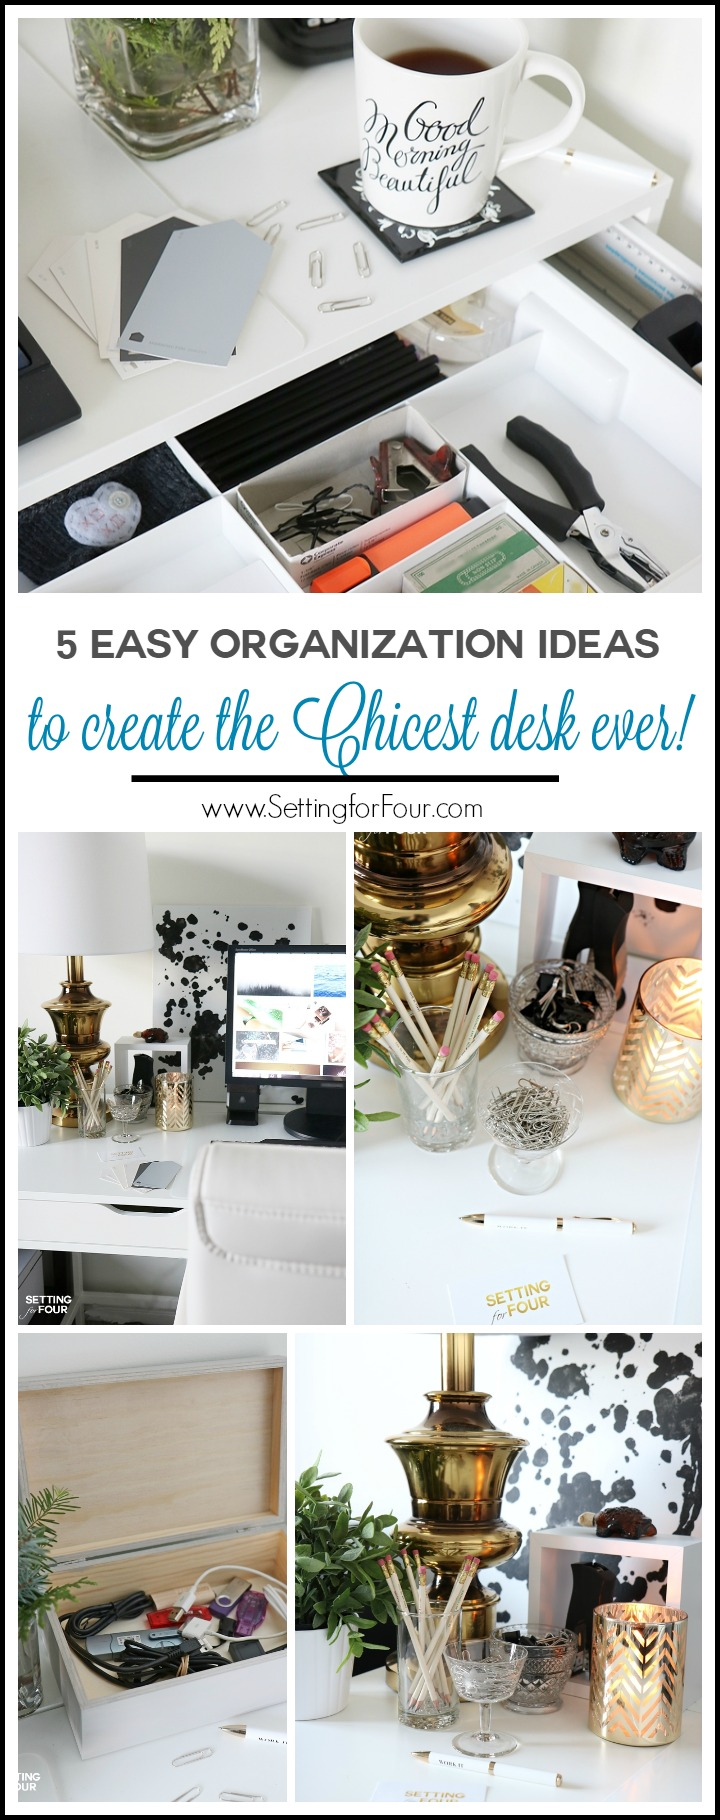 5 Easy Organization Ideas to create the chicest desk ever!